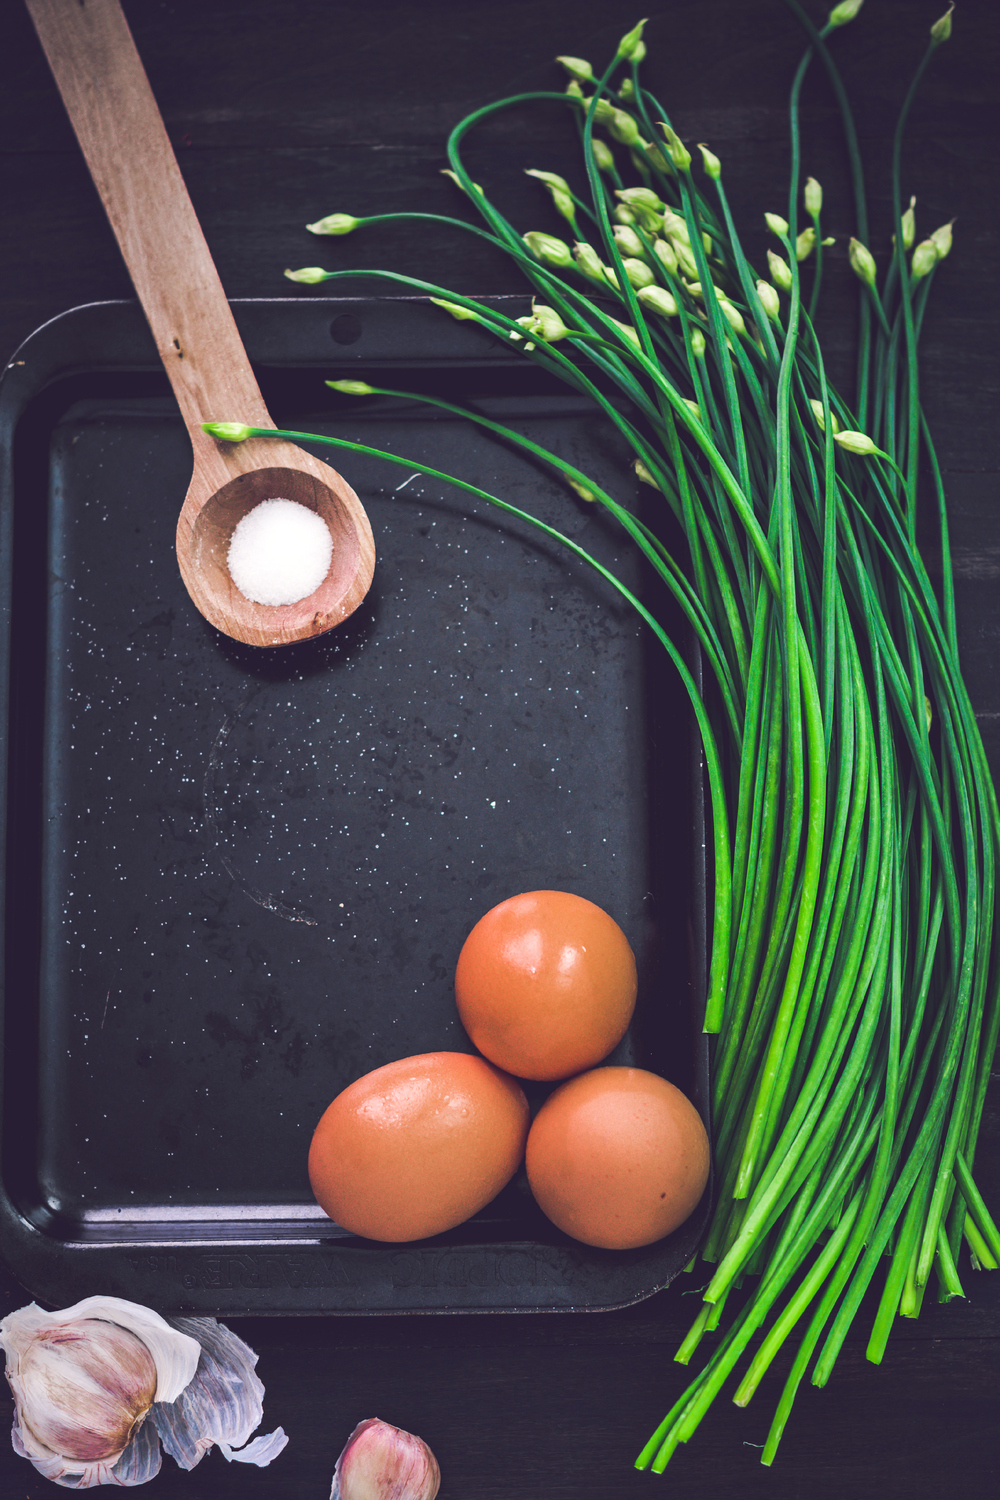 chive flower and egg 3.1.jpg